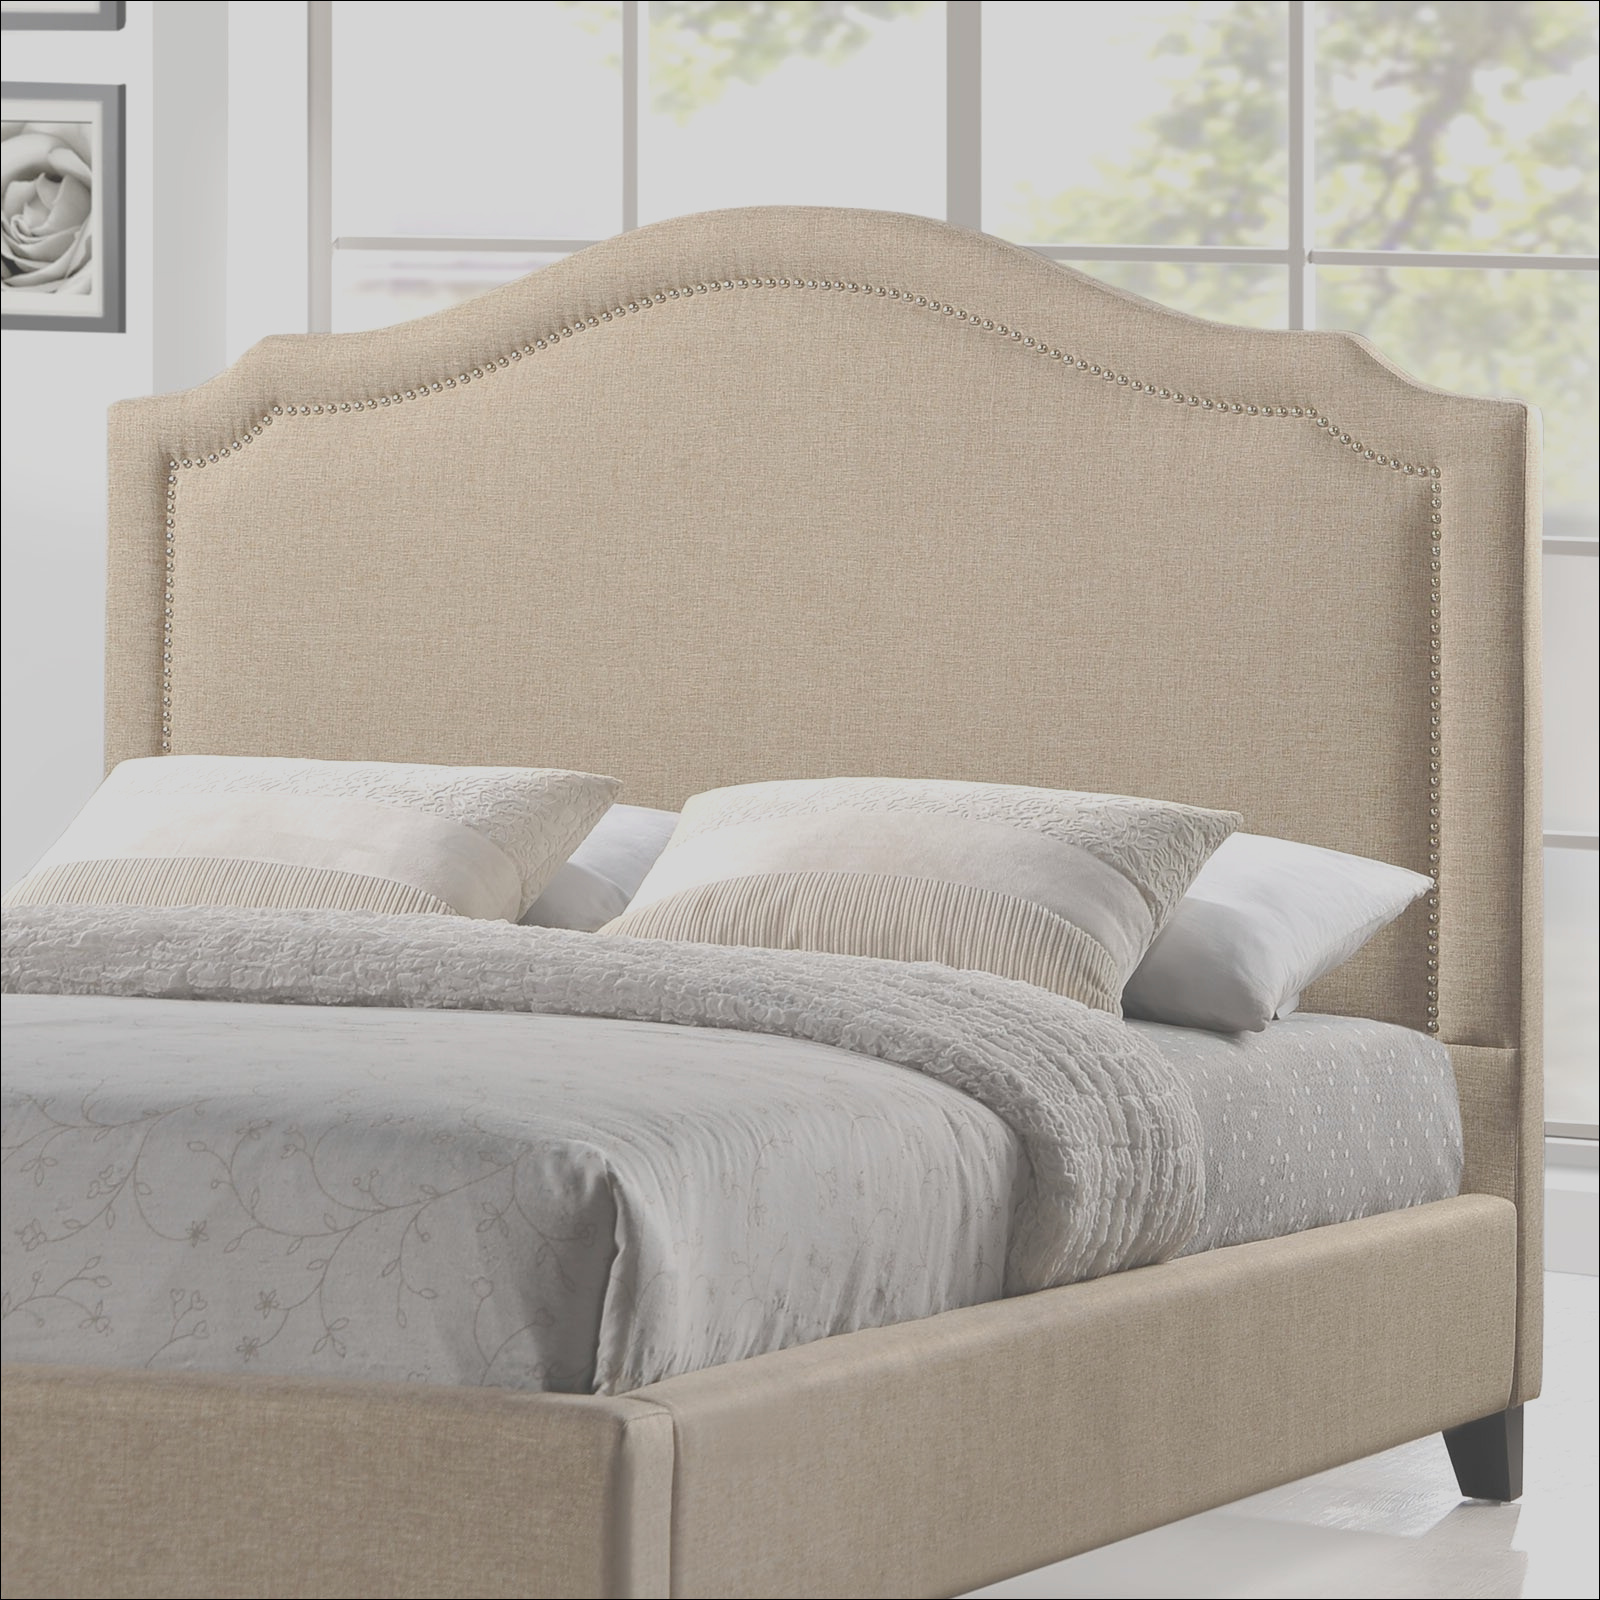 Modway Queen Upholstered Platform Bed FOW1755